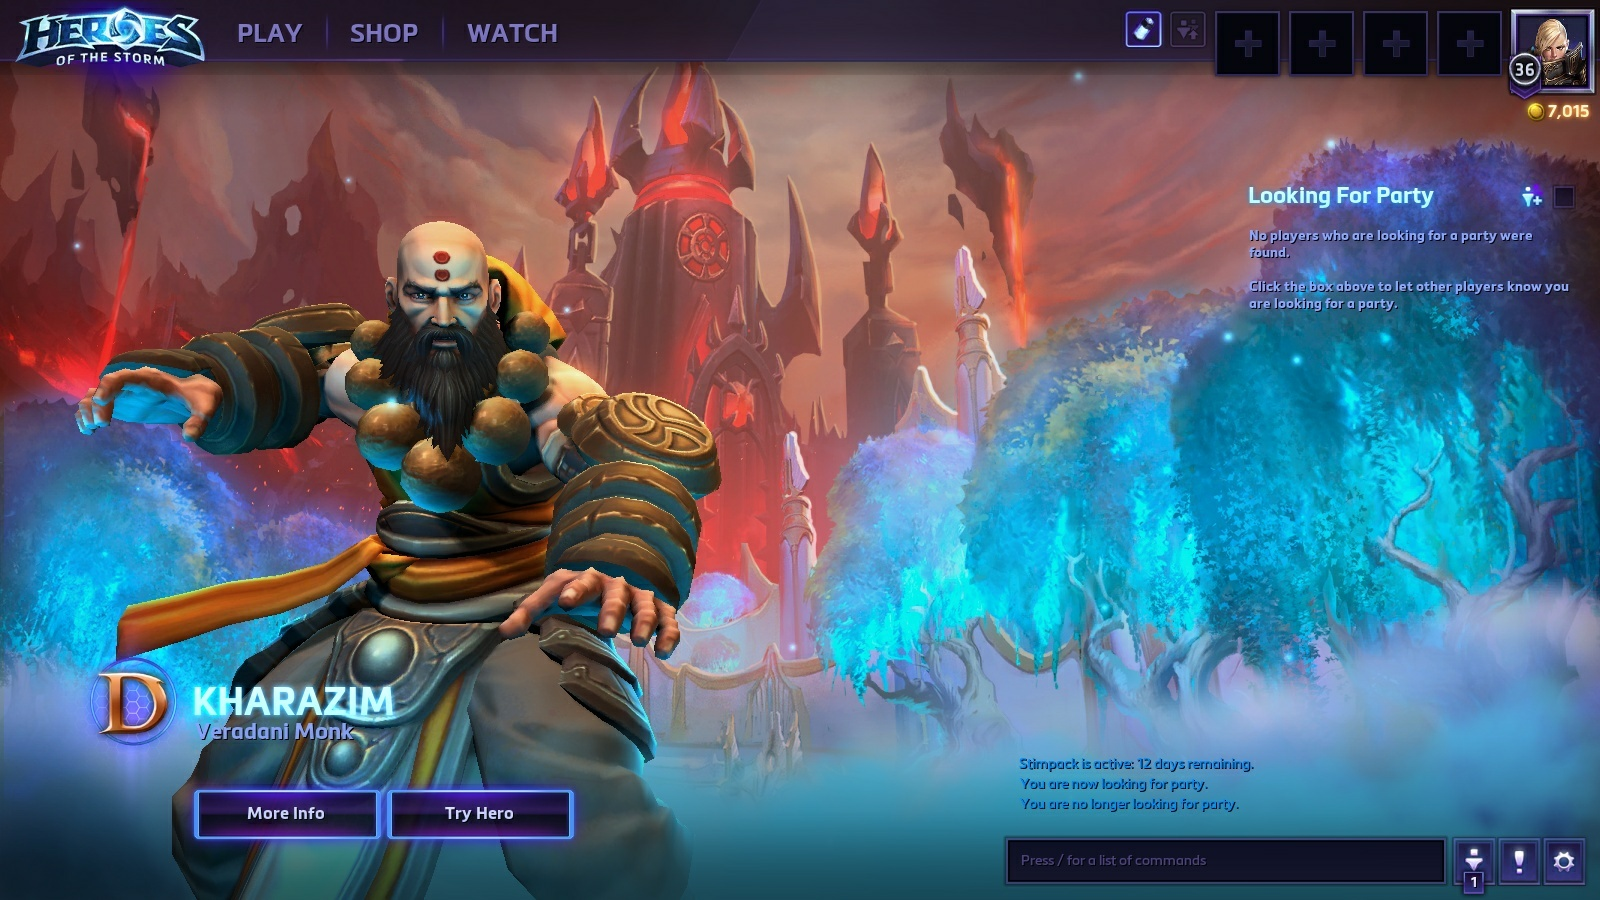 Heroes Of The Storm S Most Versatile Character Is Kharazim Diablo 3 S Monk Venturebeat Uther counter picks, synergies and other matchups. heroes of the storm s most versatile